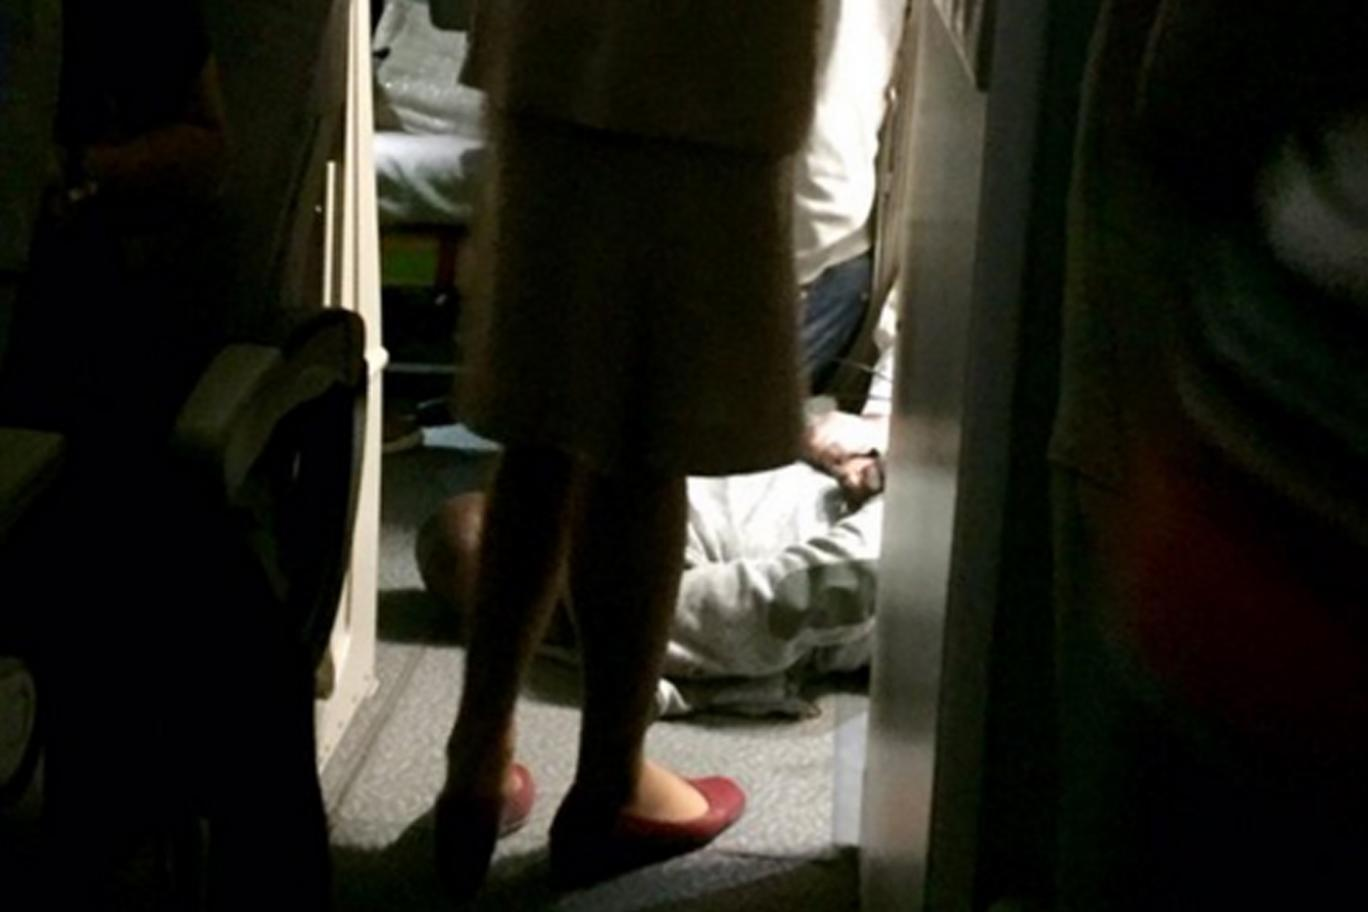 1-Passenger-restrained-by-cabin-crew-and-police-after-mid-air-attack-on-flight-from-Dubai-to-London